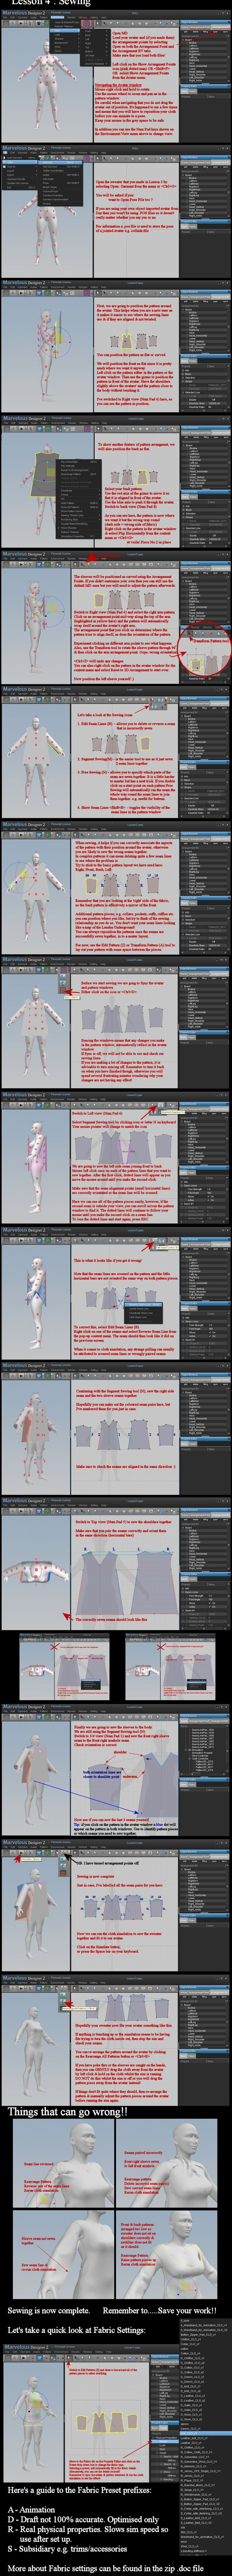 MD2 and DAZ Studio: Arranging and Sewing Pattern by *dylazuna on deviantART